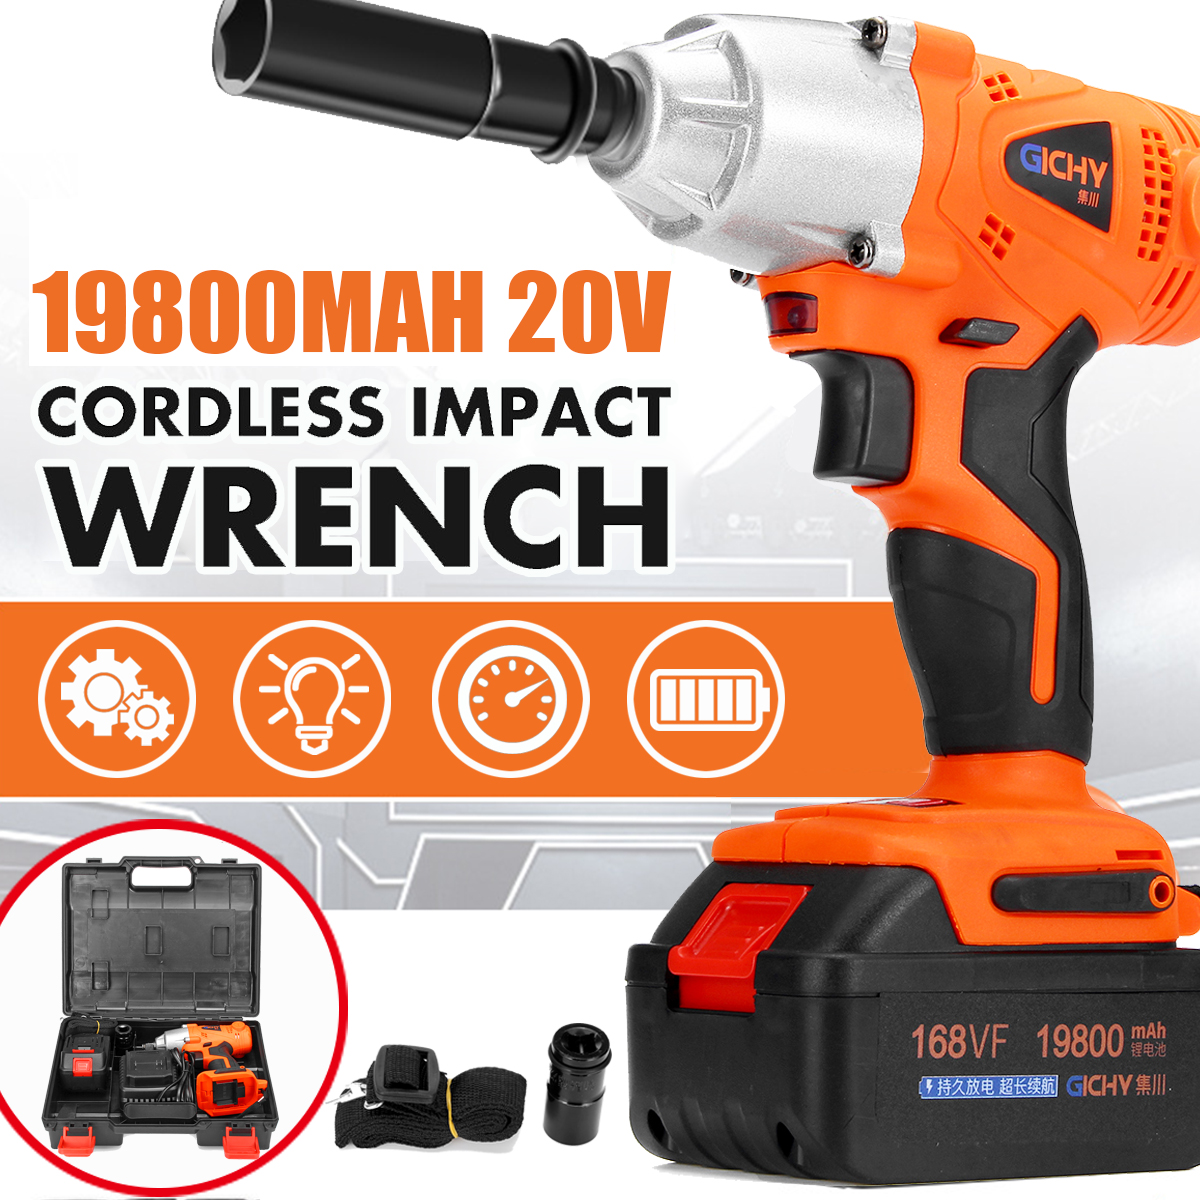 300N/m 2 Speed  Electric Wrench 168VF 19800mah Battery Impact Socket DIY Hand Drill Installation Power Tools300N/m 2 Speed  Electric Wrench 168VF 19800mah Battery Impact Socket DIY Hand Drill Installation Power Tools